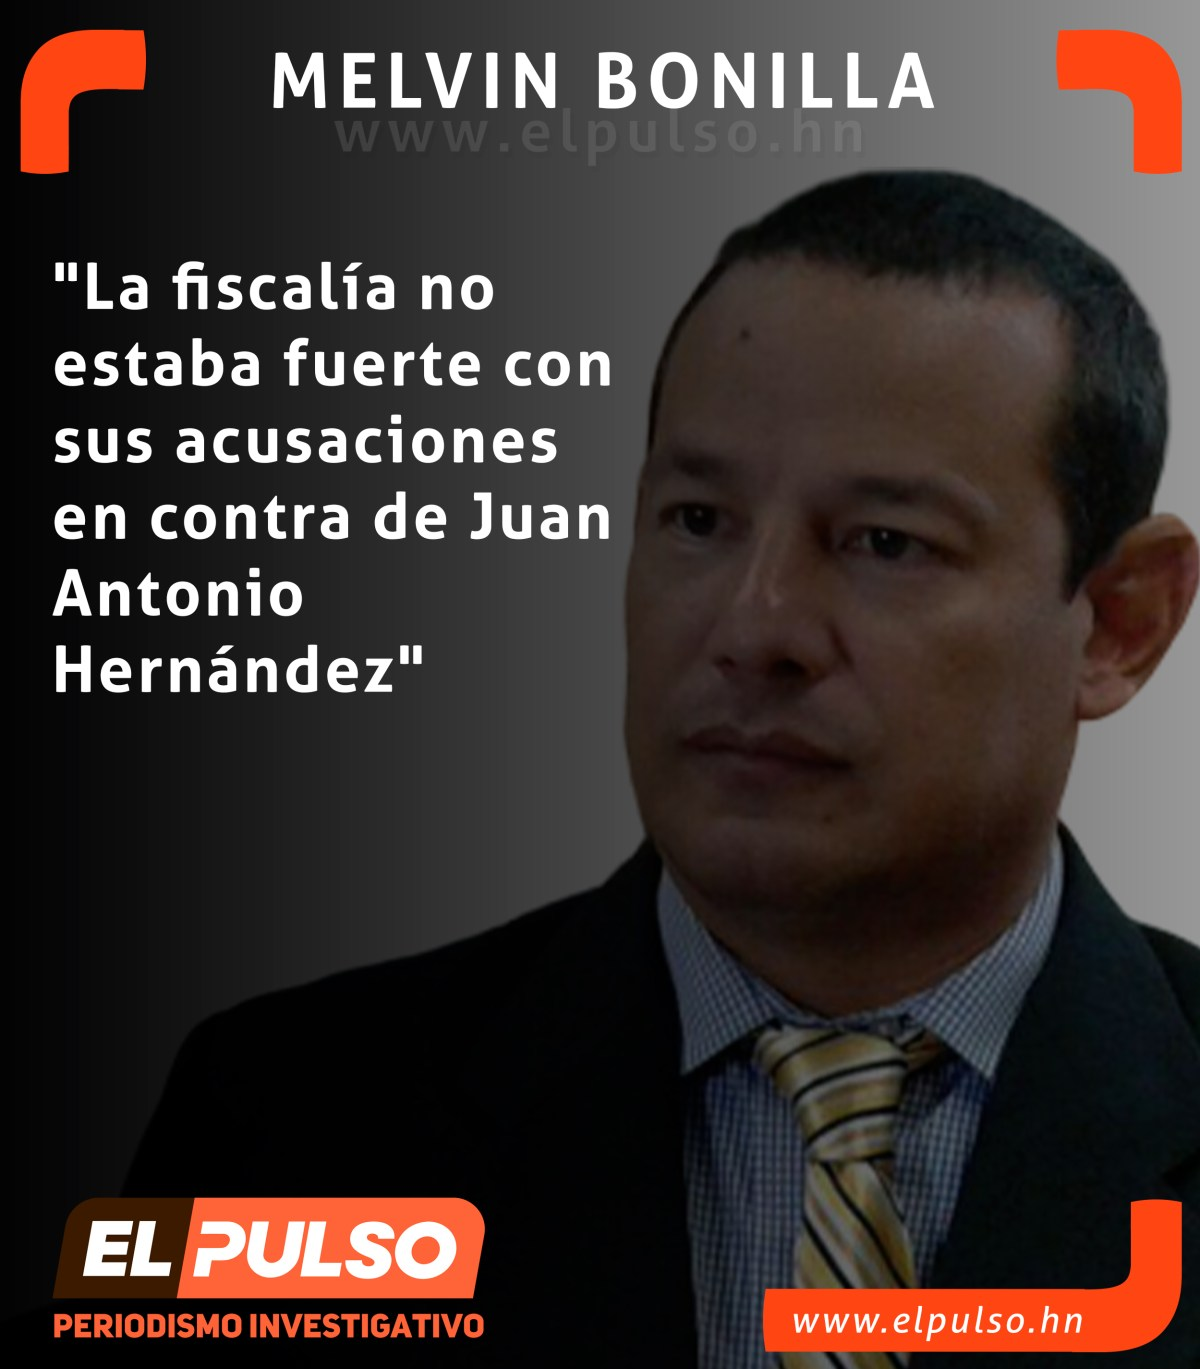 https://i0.wp.com/elpulso.hn/wp-content/uploads/2019/10/MELVIN-BONILLA-07-.jpg?fit=1200%2C1369&ssl=1